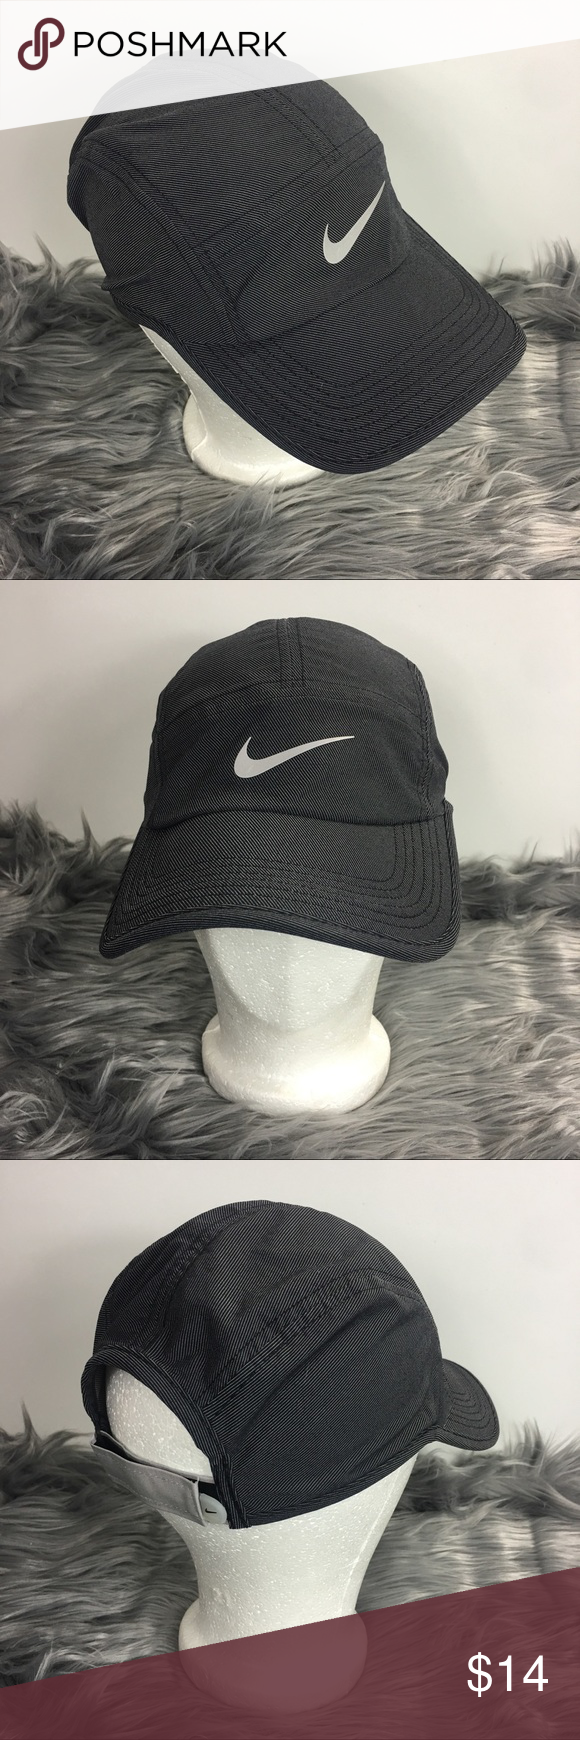 e80377fd19bd5 Nike AW84 Dri-fit 5 Panel Cap Hat Reflective Nike AW84 Dri-fit 5 Panel Cap  Hat Dark Gray Reflective Adjustable Adult Unisex Very Nice Pre-Owned  Condition